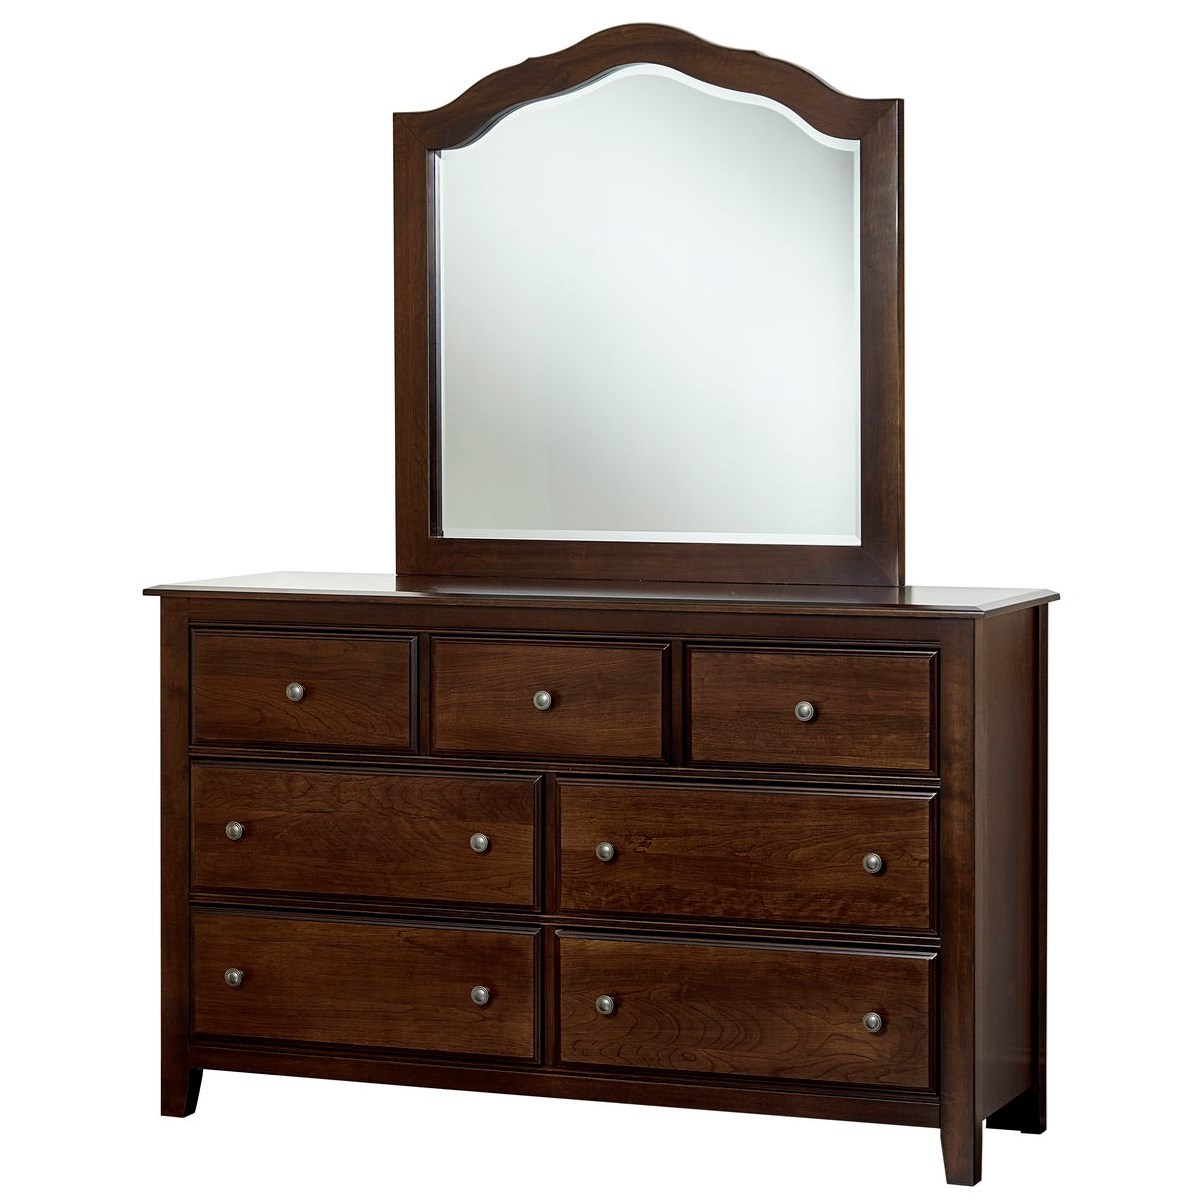 Artisan Choices Loft Triple Dresser & Tall Arched Mirror by Artisan & Post at Mueller Furniture